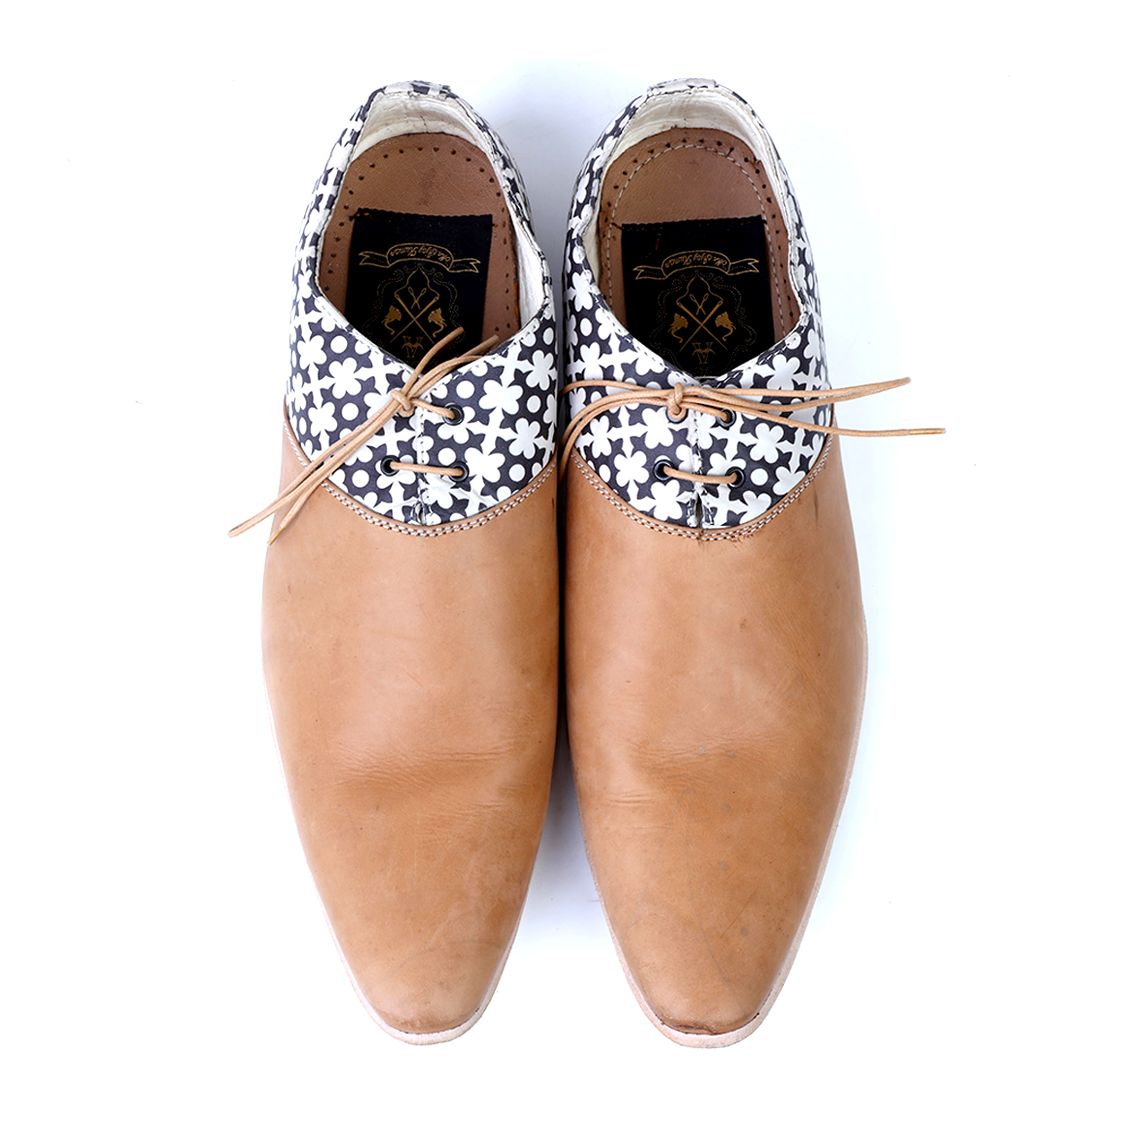 Sachi Handcrafted Leather Shoes